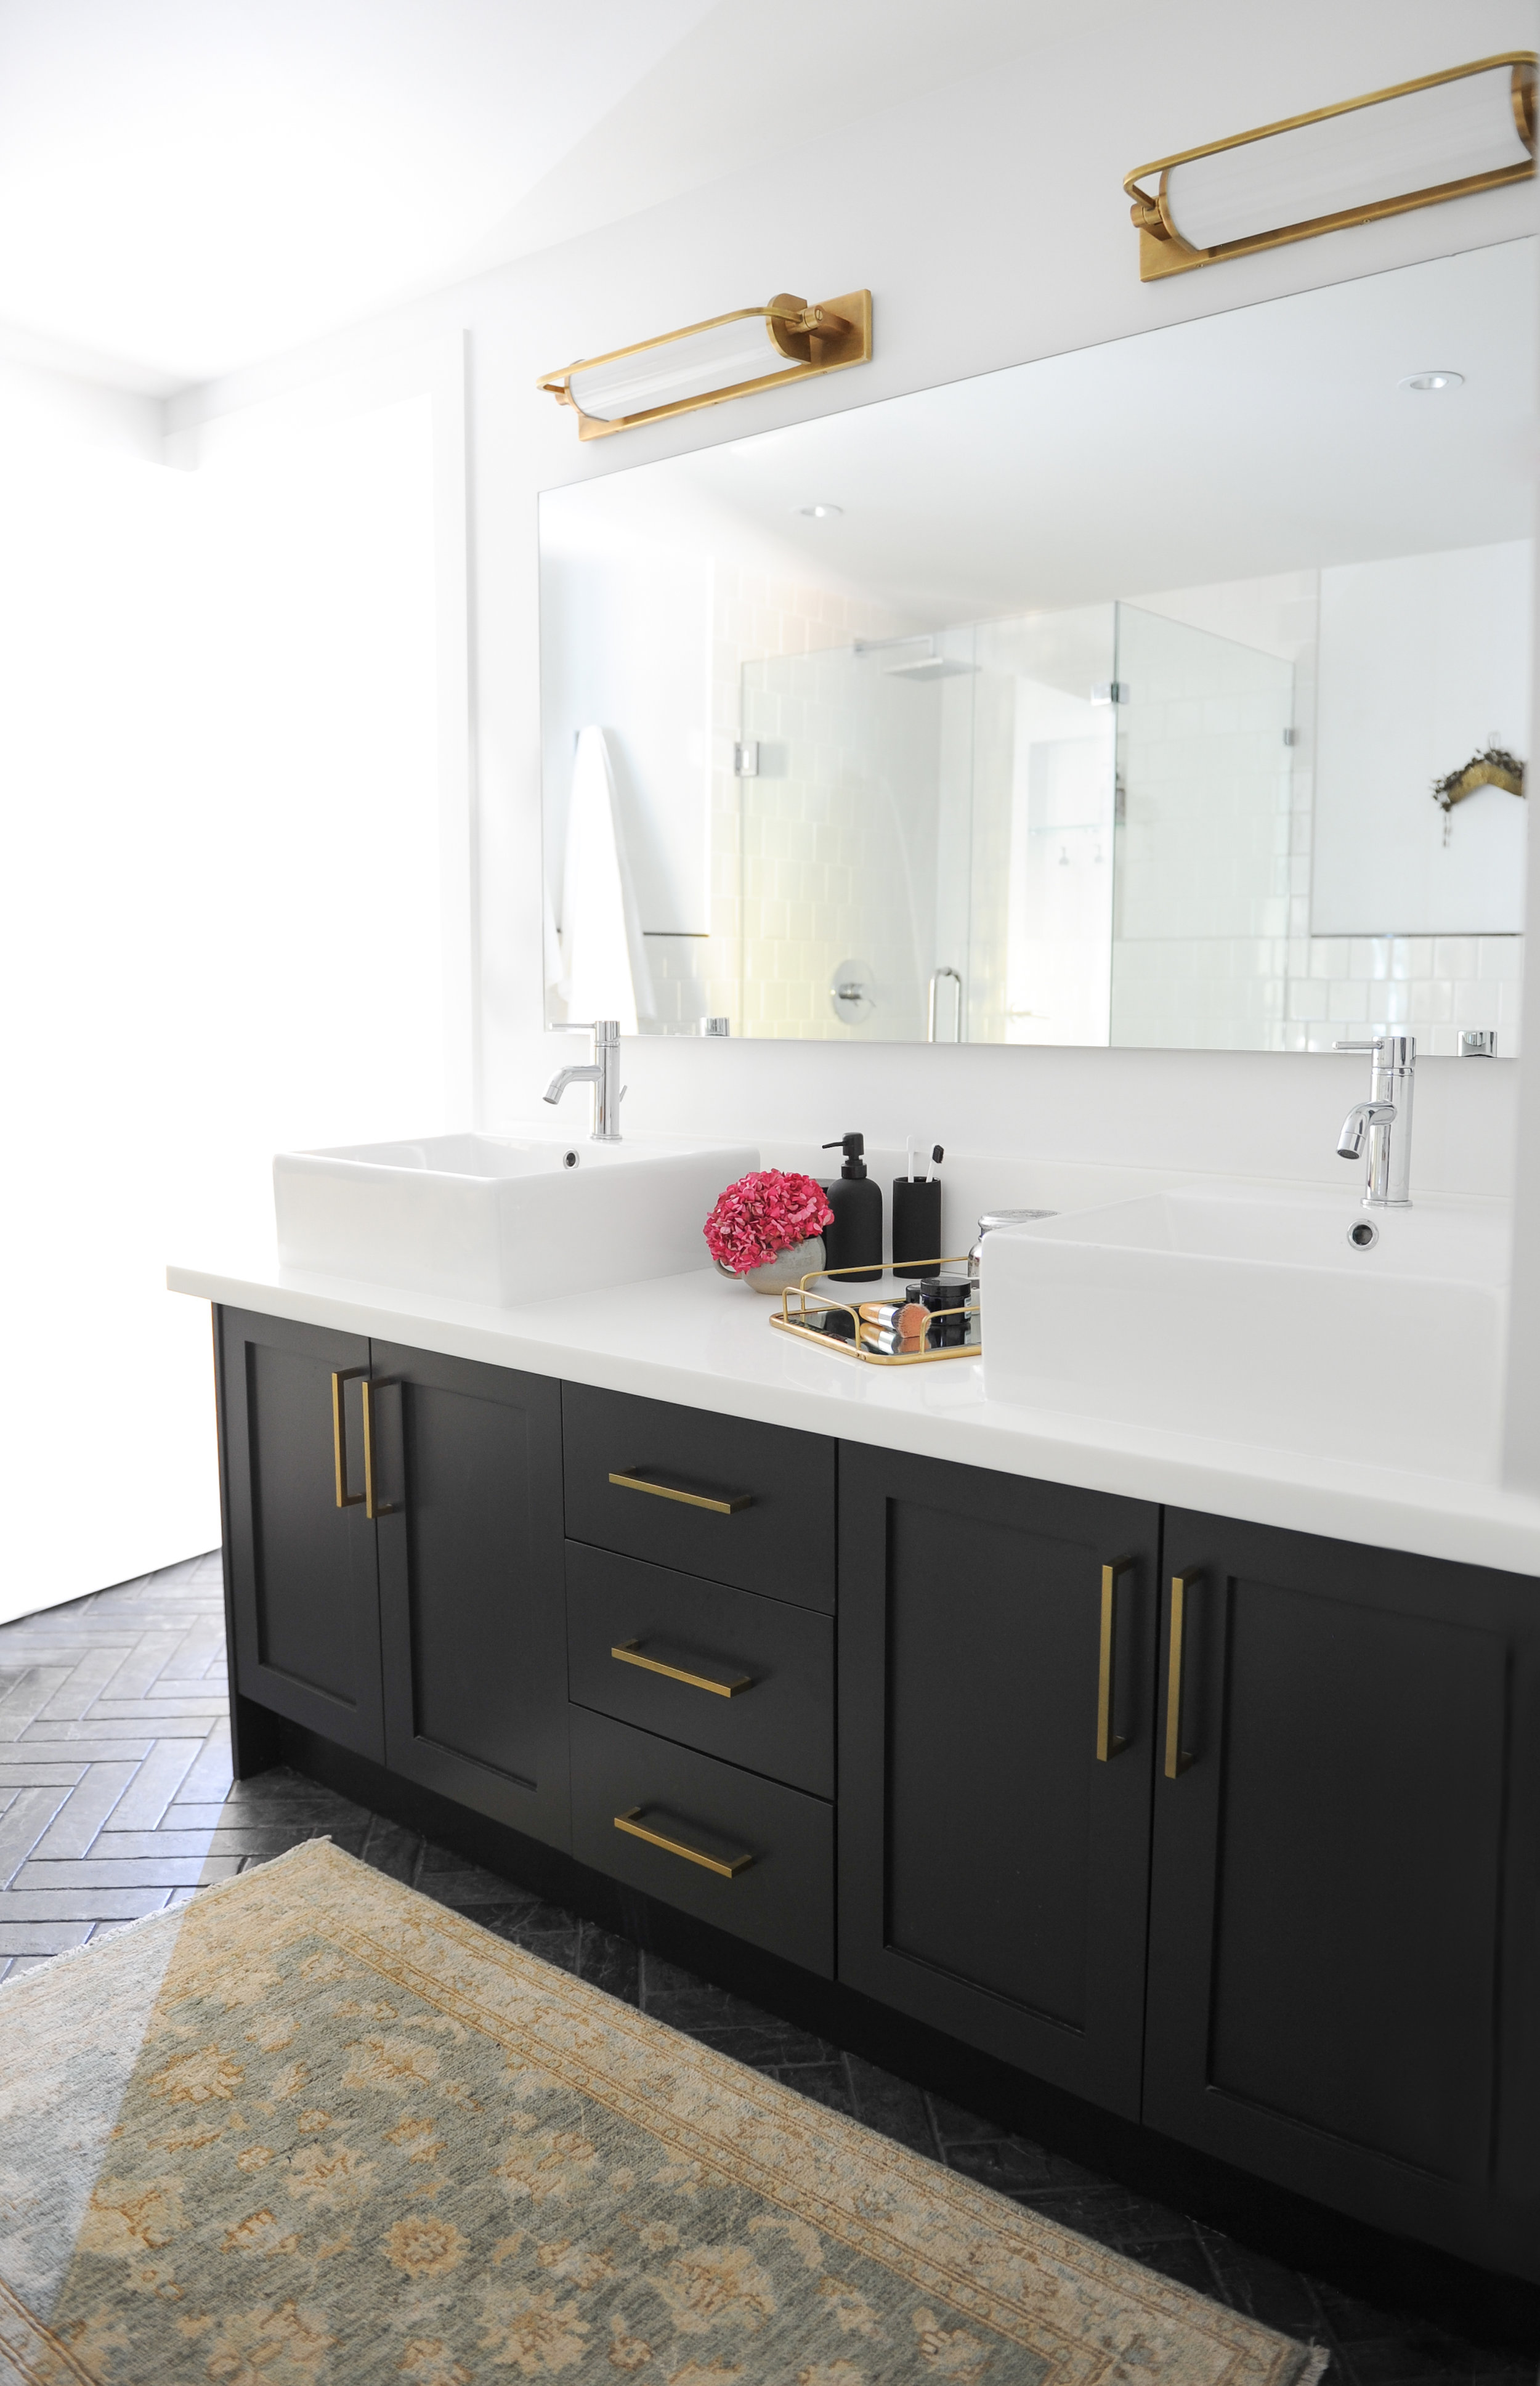 This bright bathroom is decorated with black counters with white tops. There are his and her sinks with gold light fixtures above the long mirror.